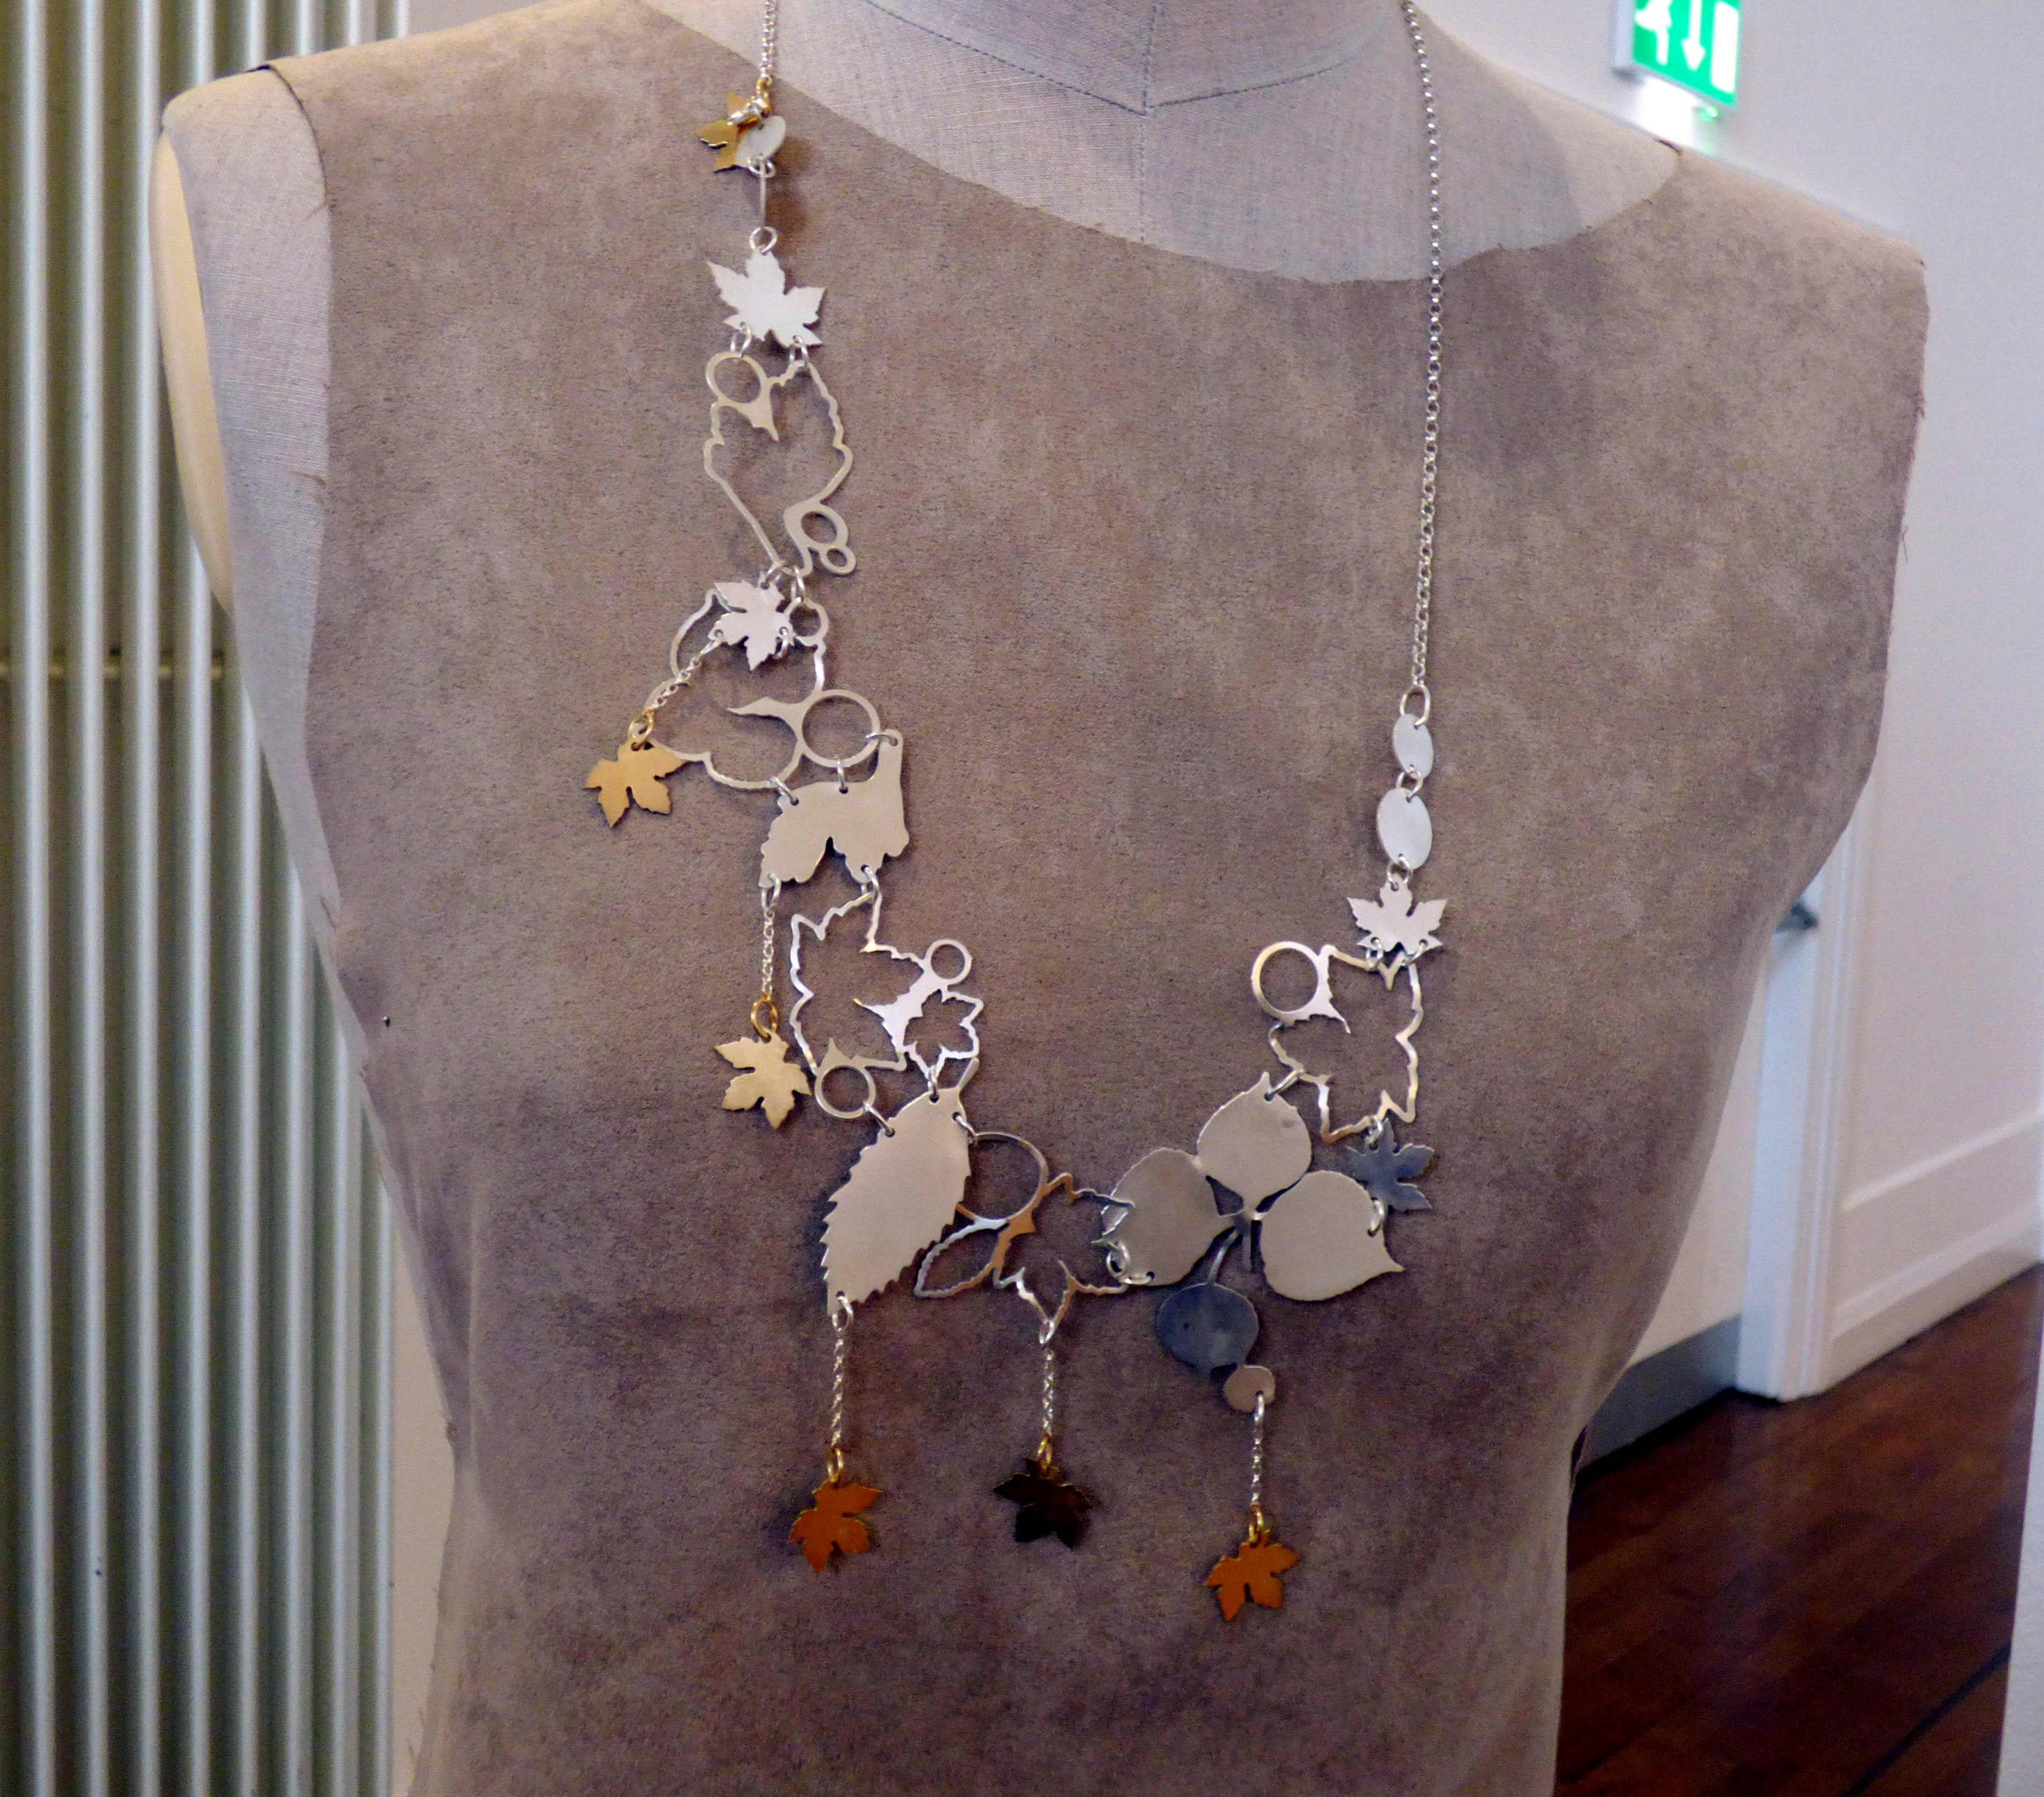 jewellery by Joanna Wood at Hope Univ Degree Show 2017